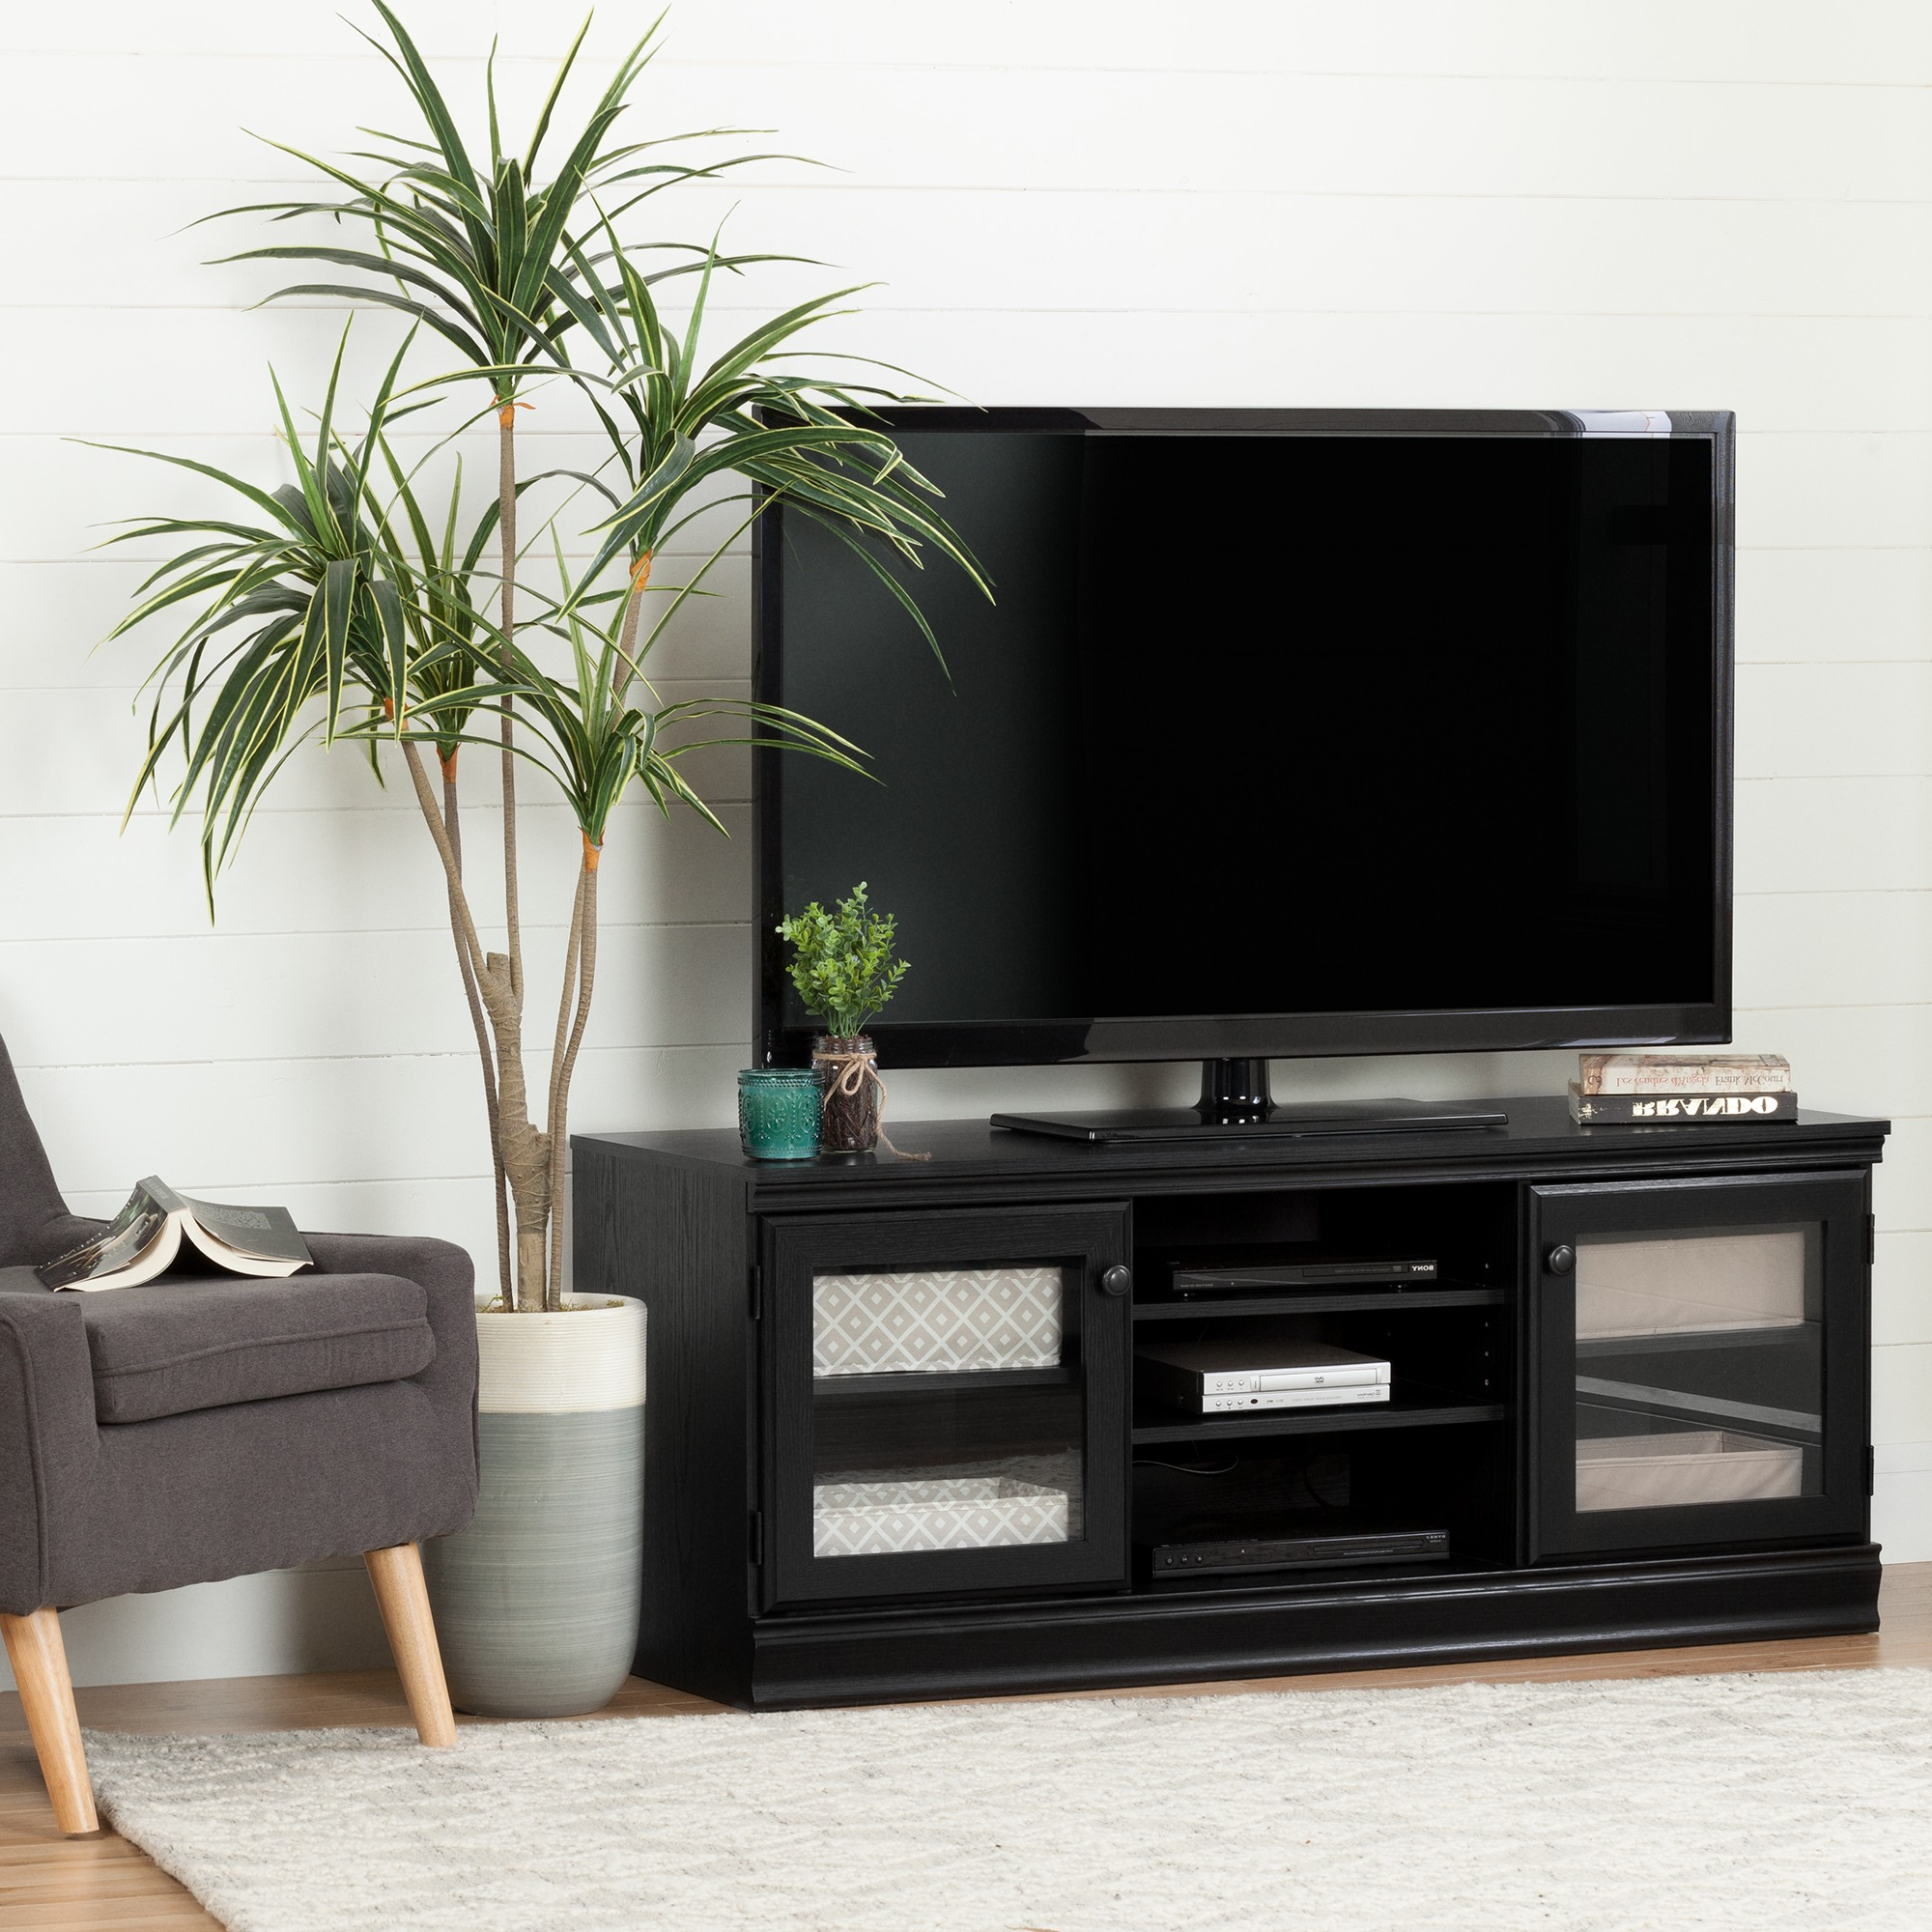 South Shore Morgan Tv Stand For Tvs Up To 75'', Multiple In Tv Stands With Led Lights In Multiple Finishes (View 6 of 20)